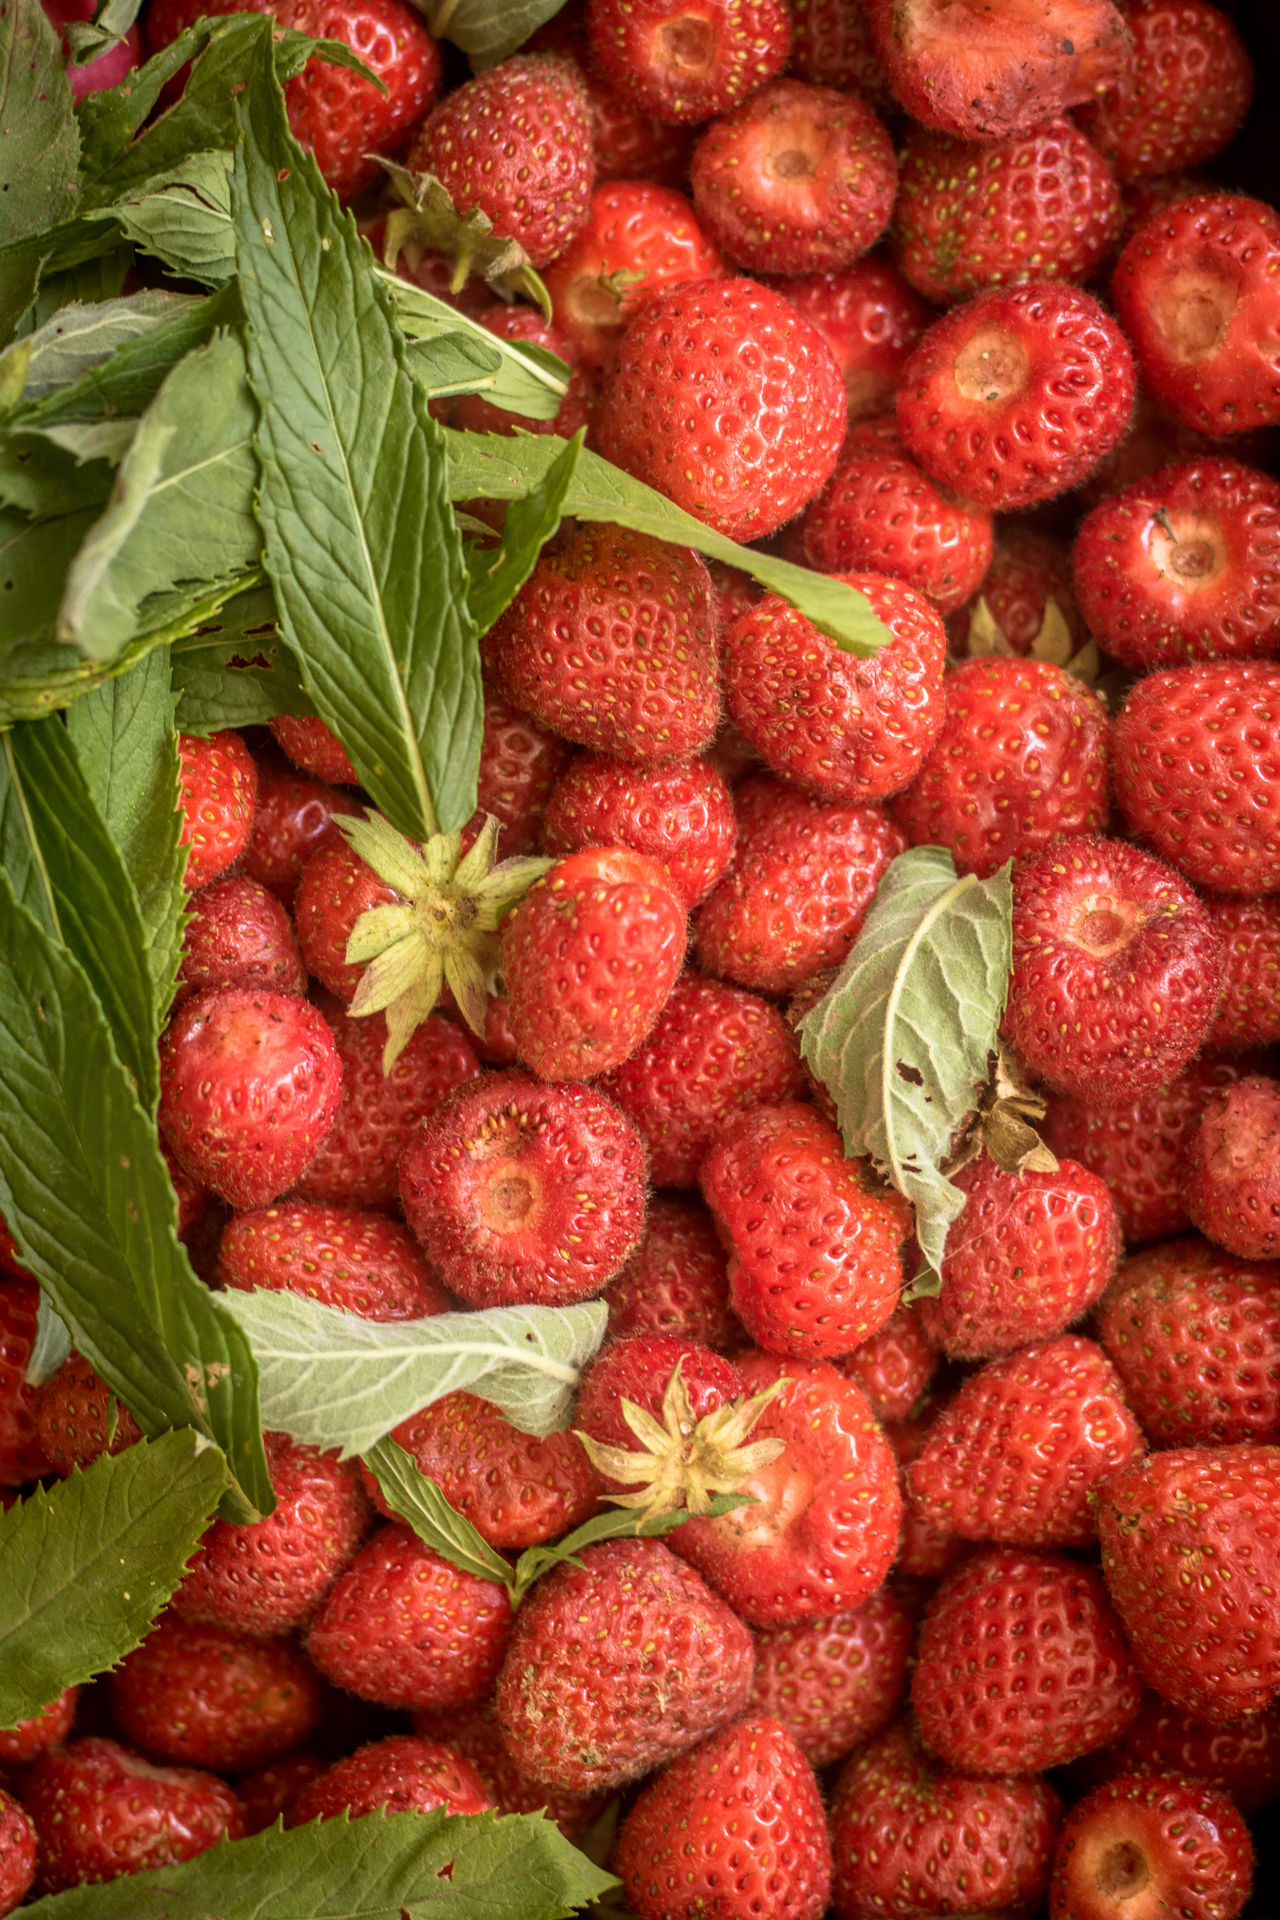 Background Close-up Day Food Food And Drink Freshness Fruit Full Frame Healthy Eating Large Group Of Objects Leaf Macro No People Outdoors Red Red Strawberries Strawberry